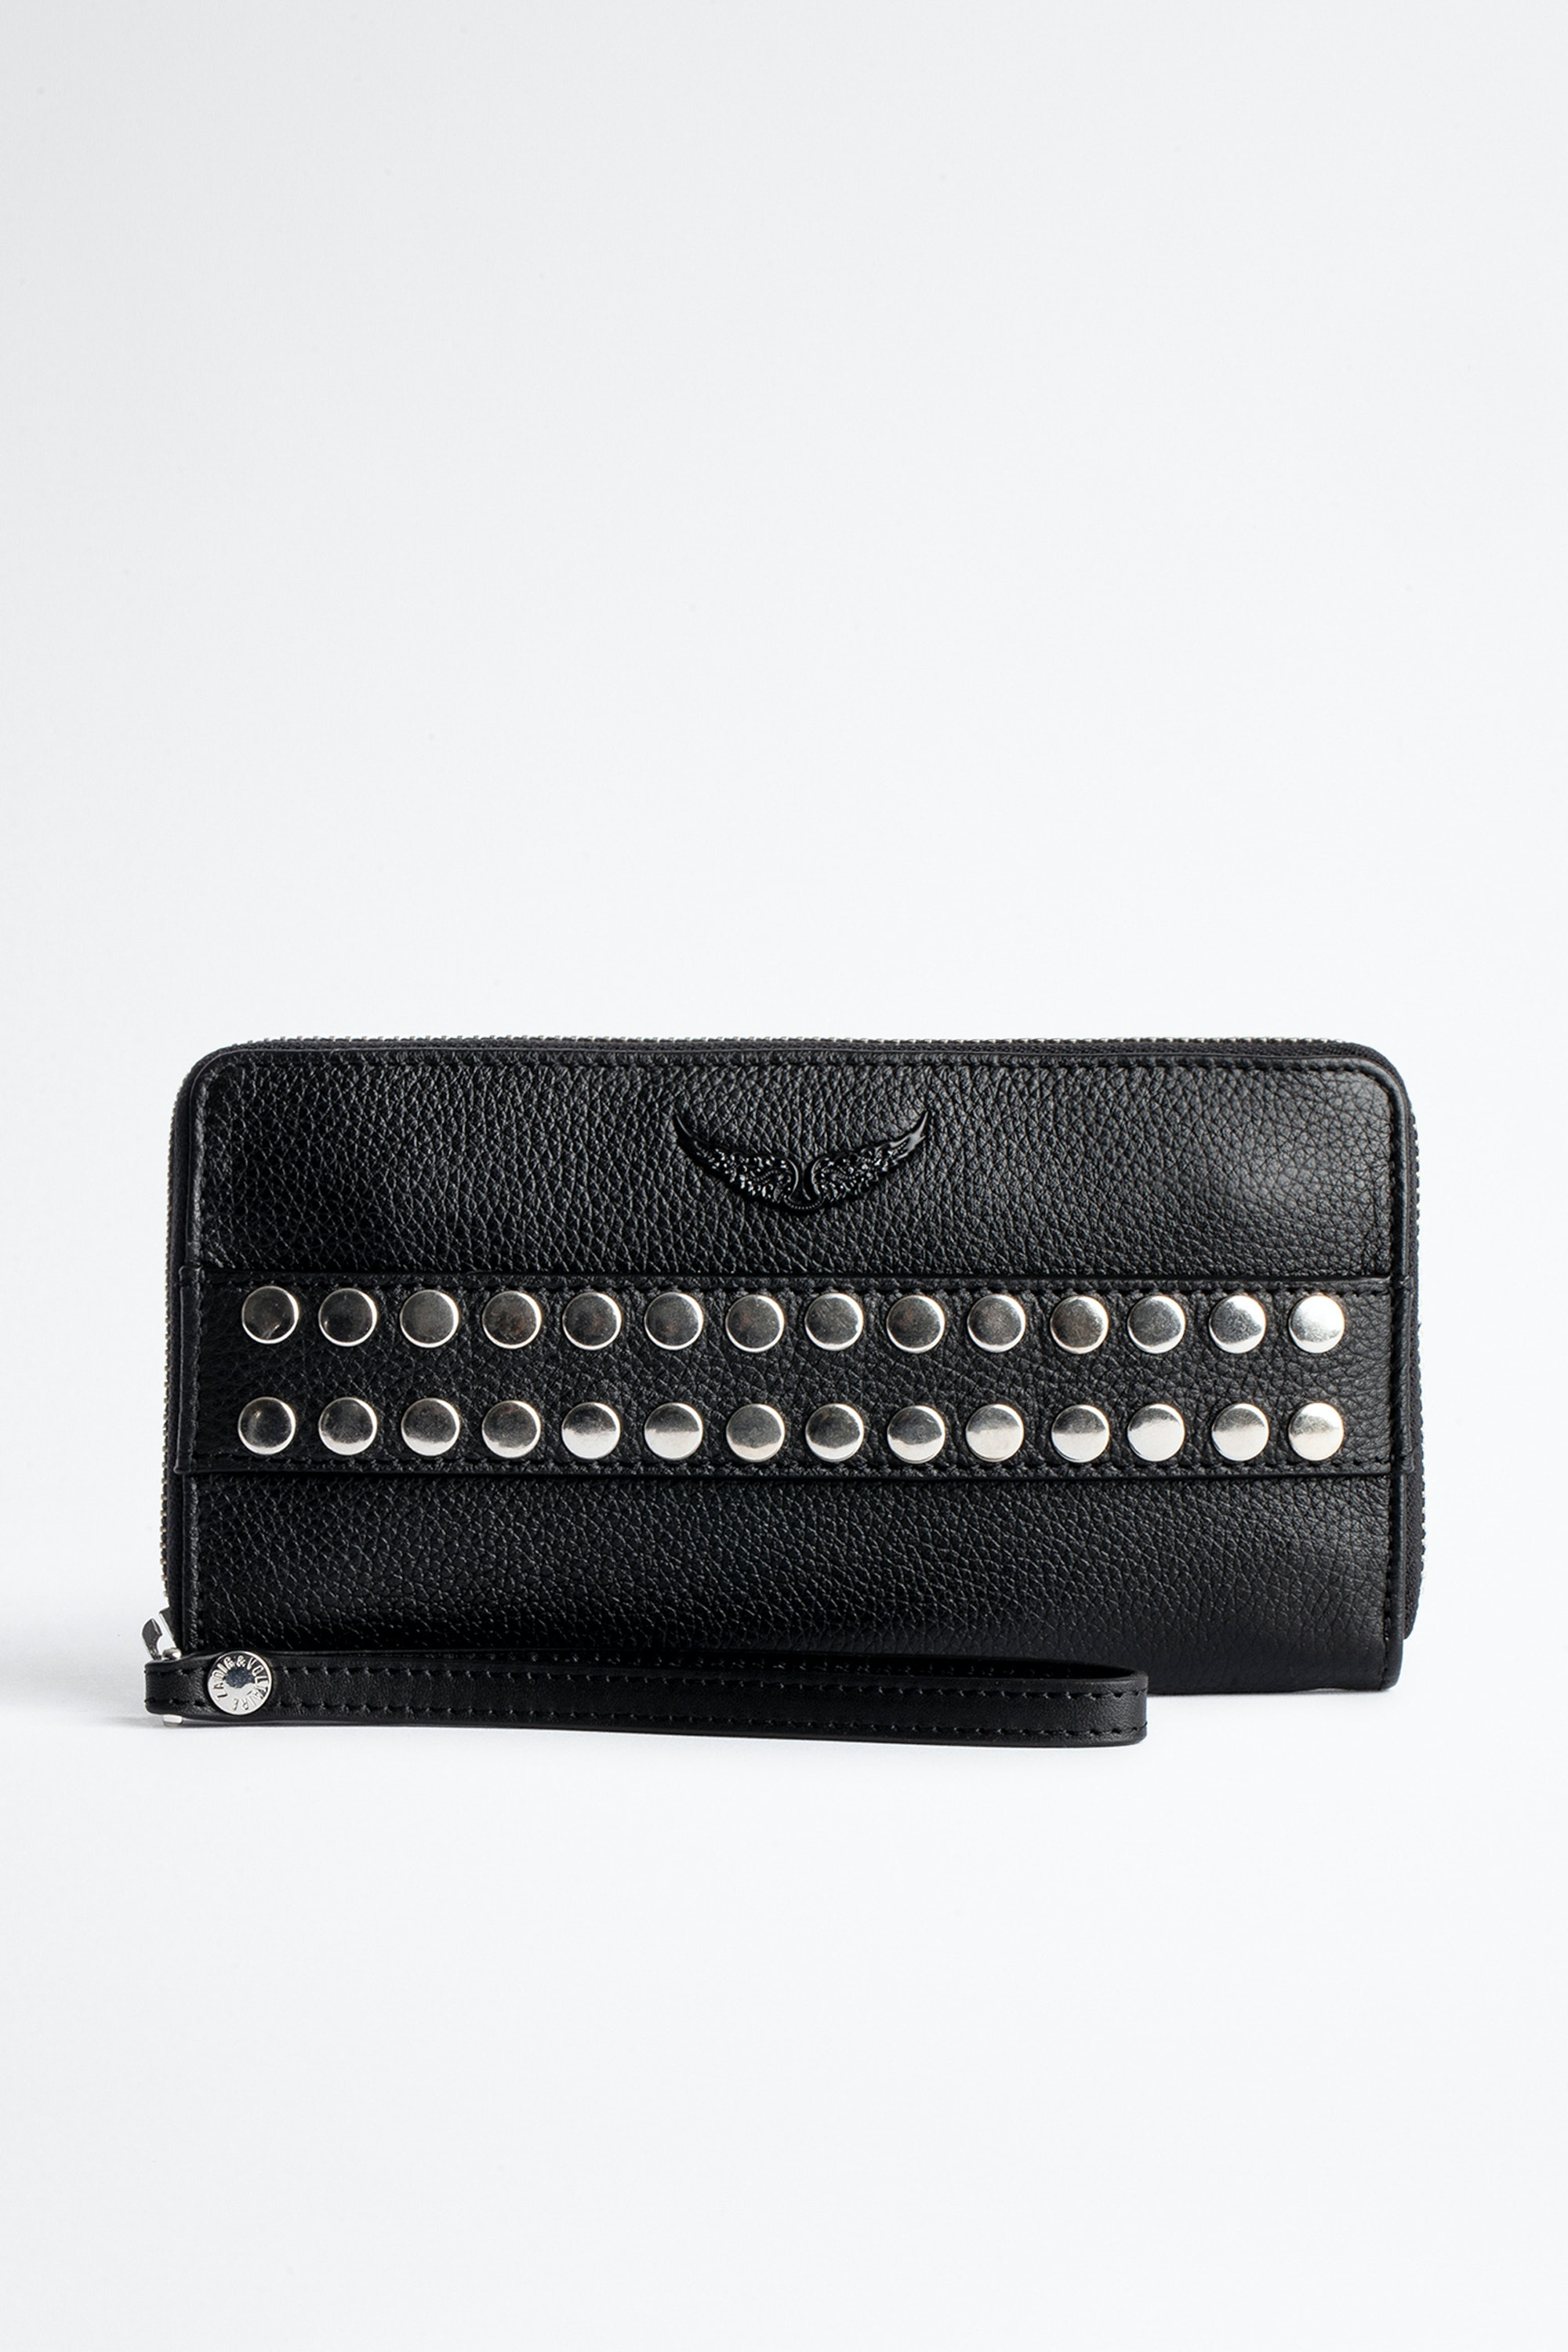 Brieftasche Compagnon Studs Outline